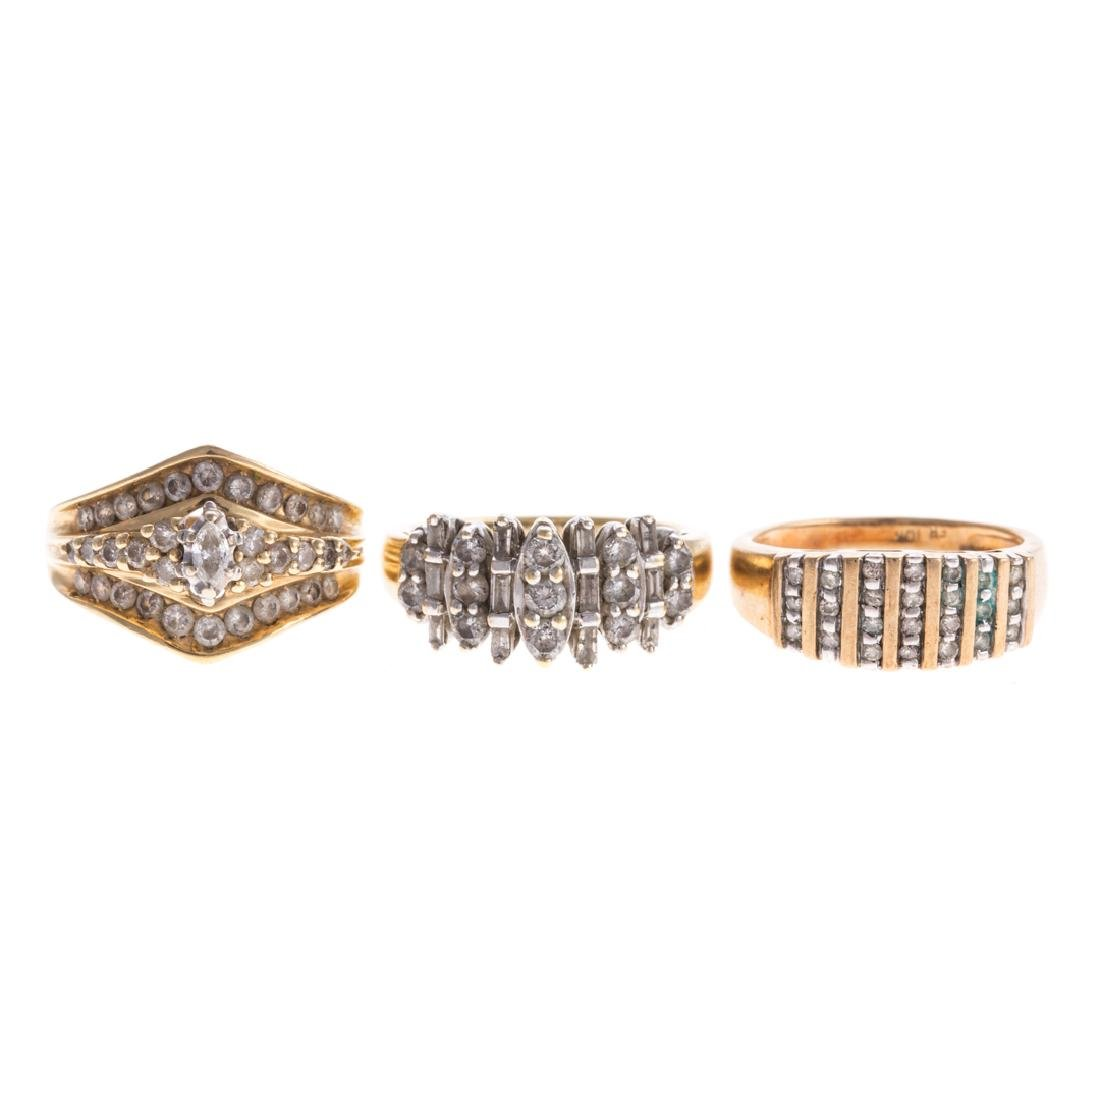 A Trio of Lady's Diamond Bands in Gold